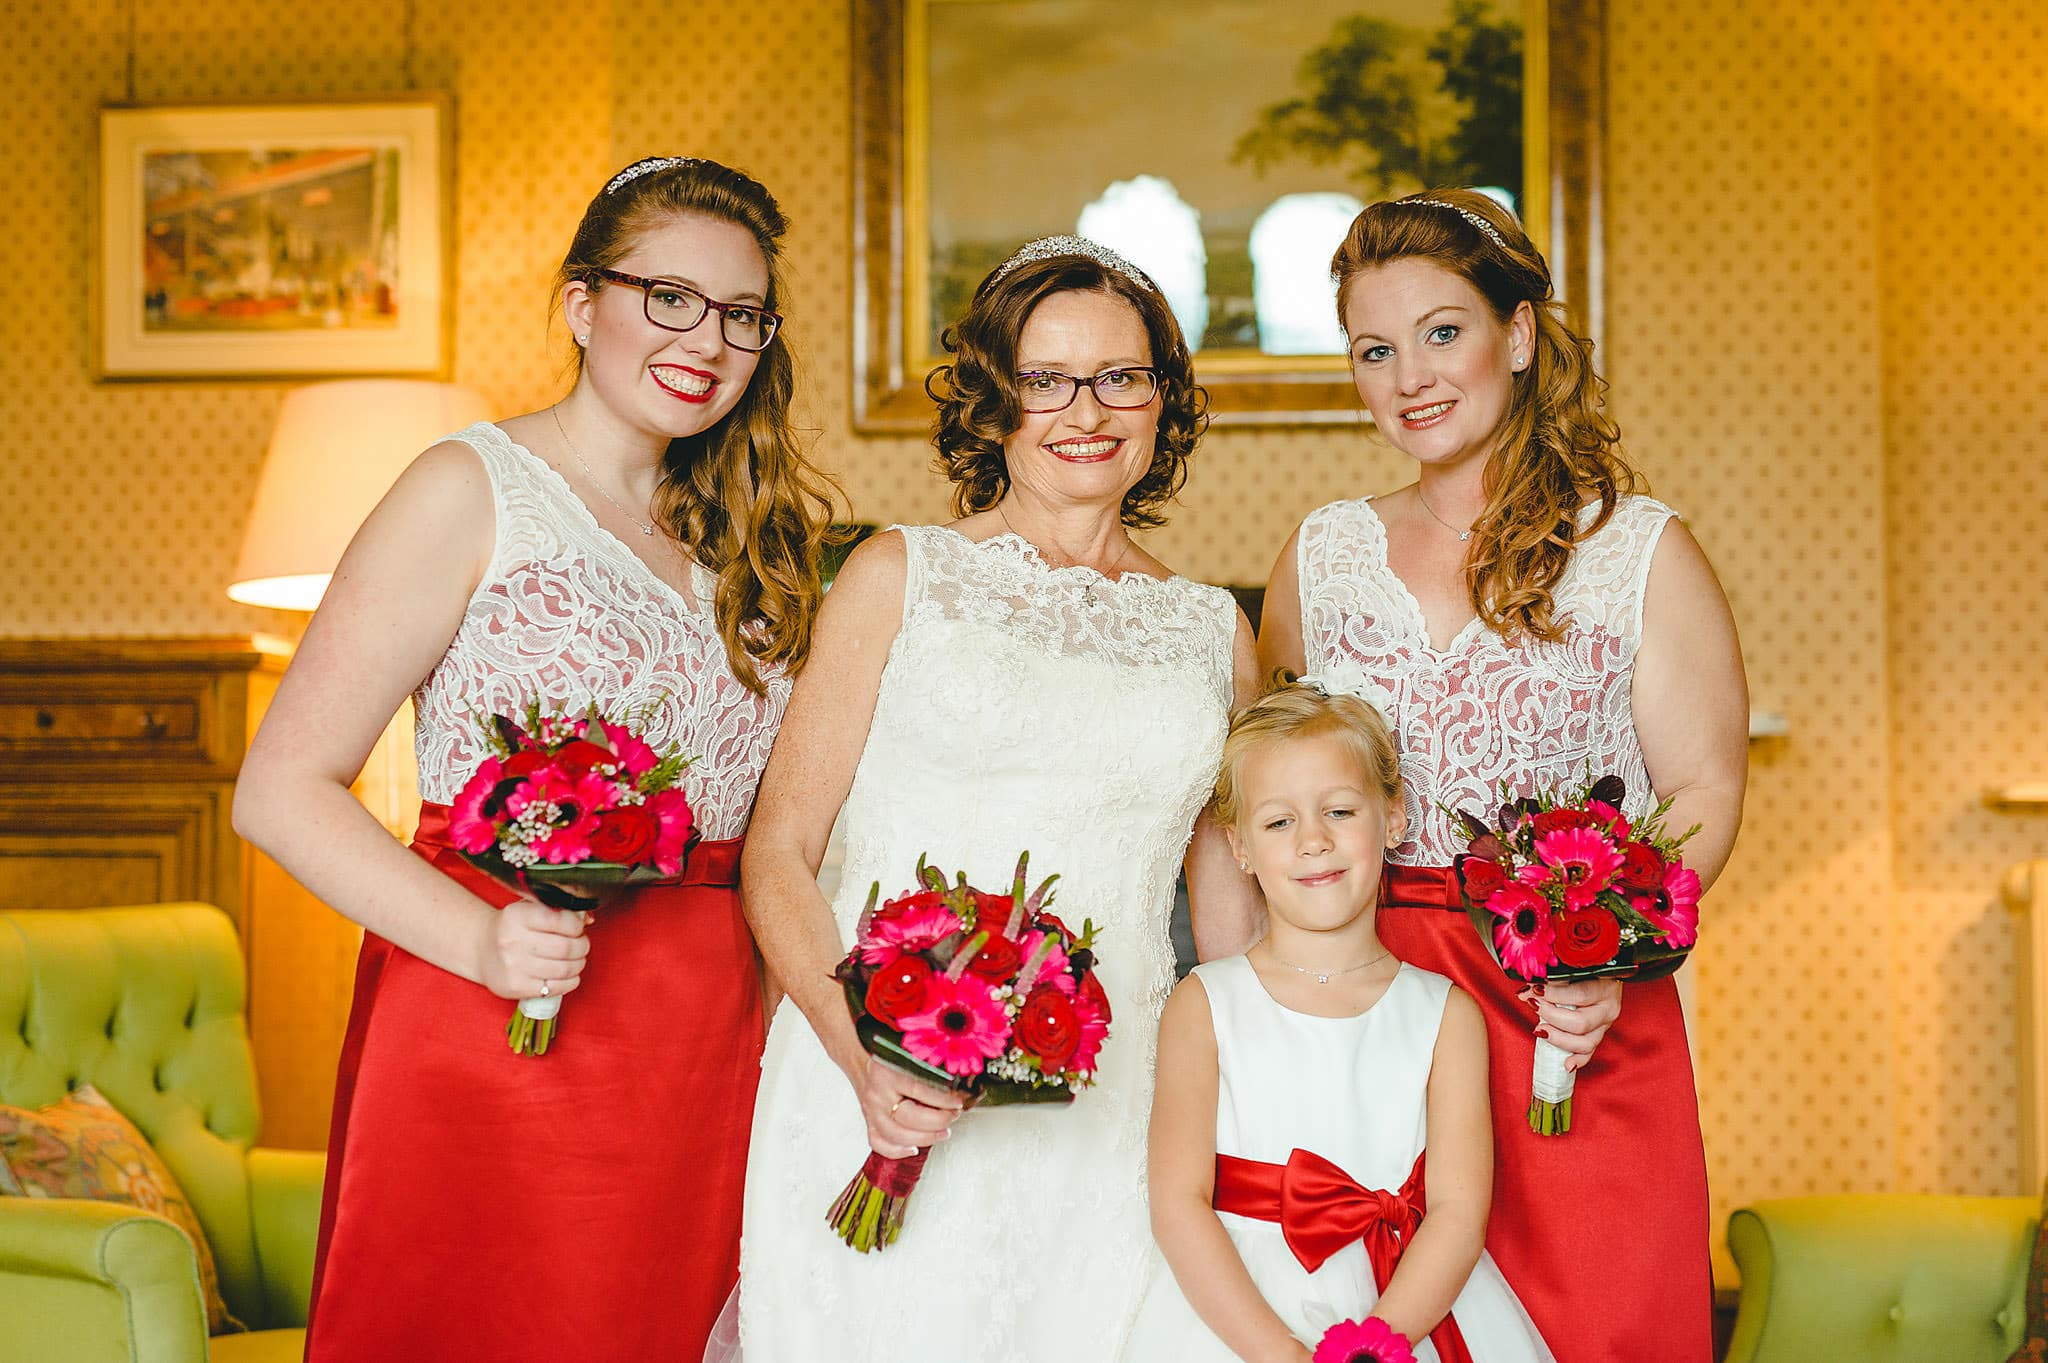 wedding-photography-at-eastnor-castle-in-herefordshire (36)